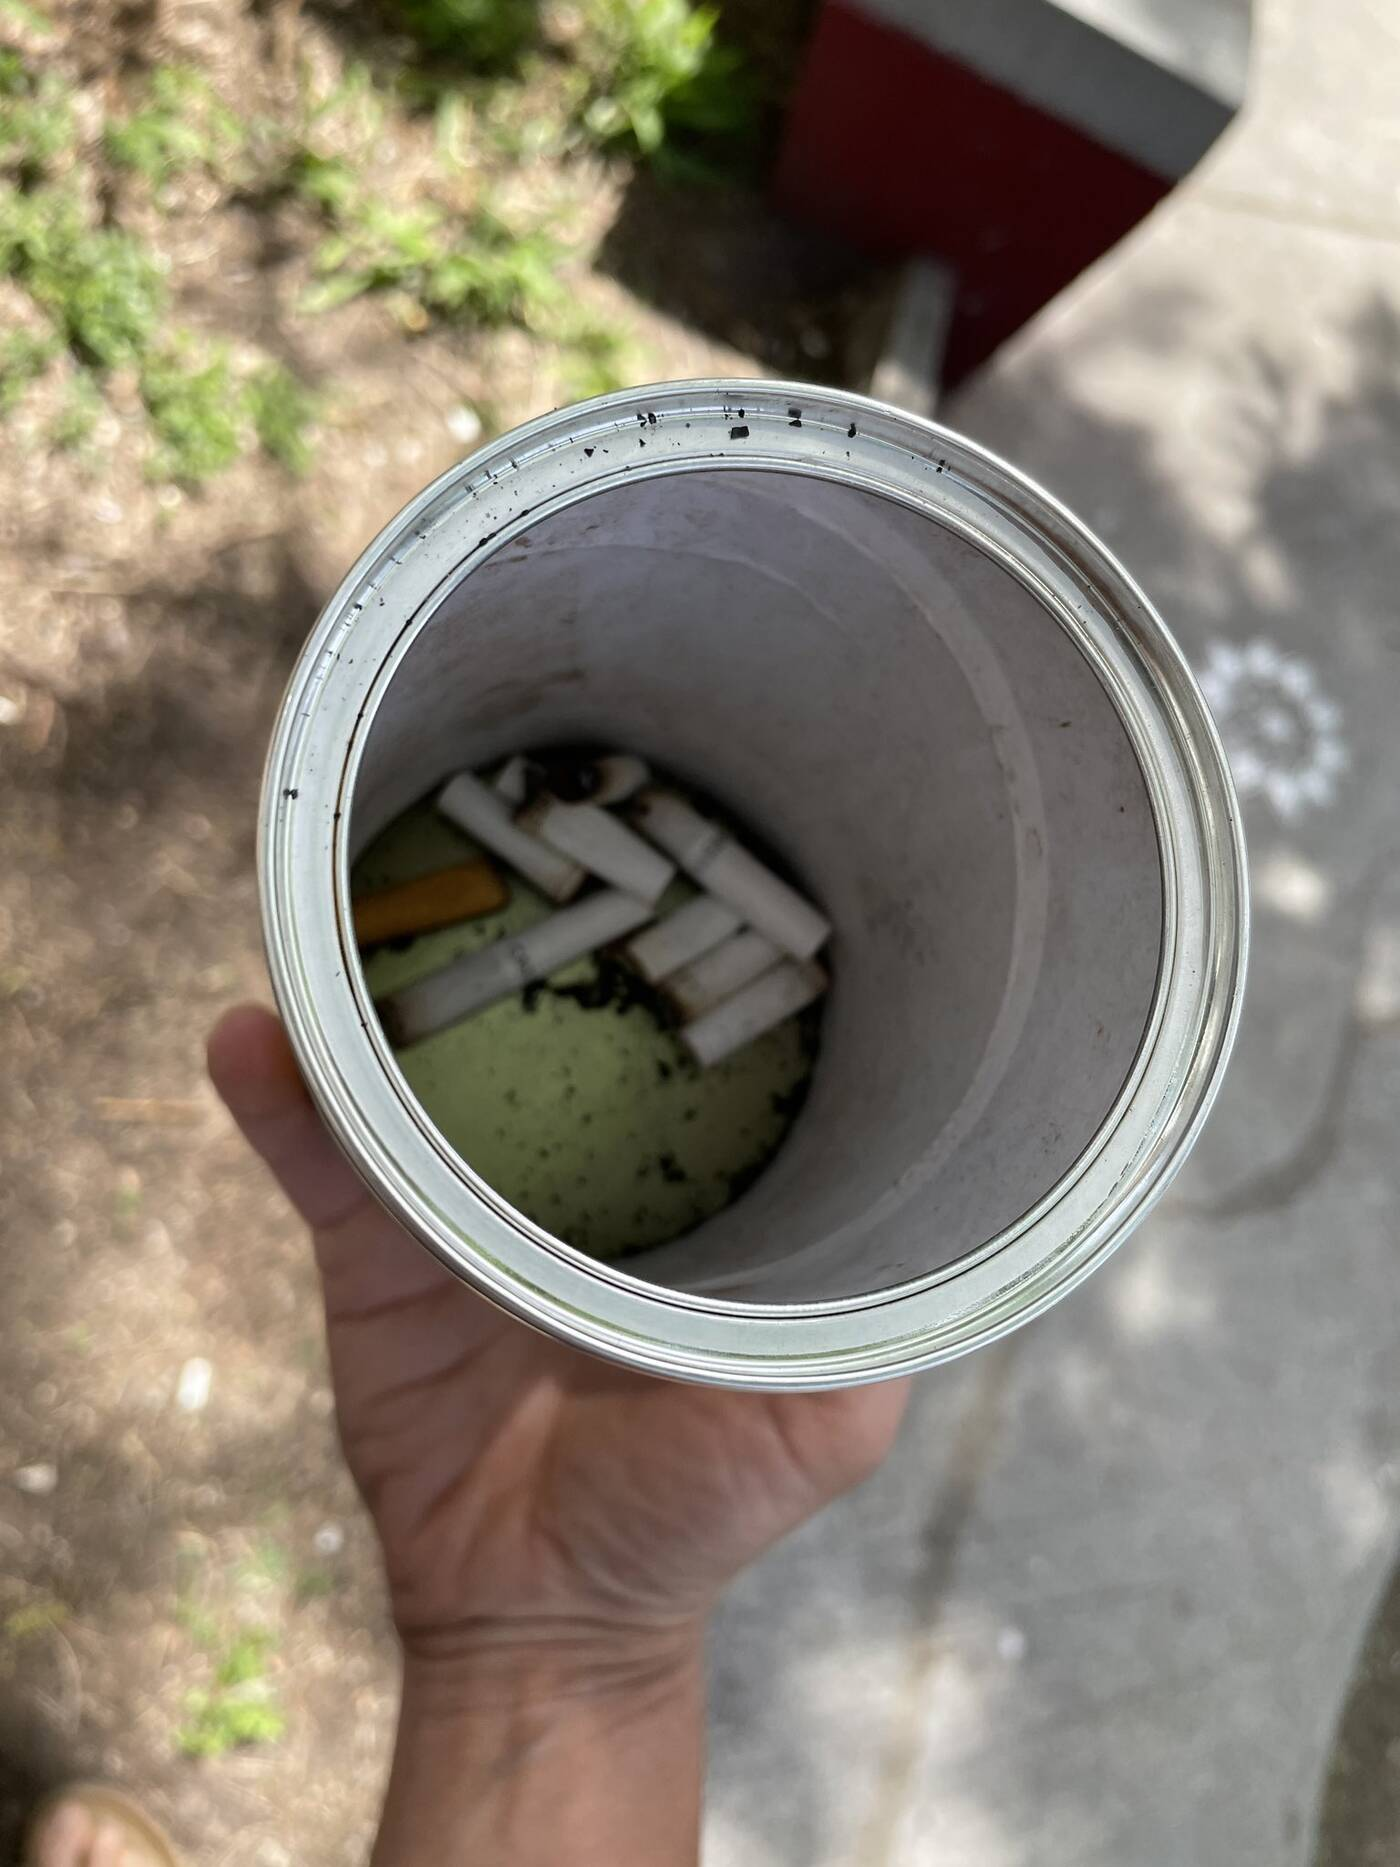 tcigarette butts